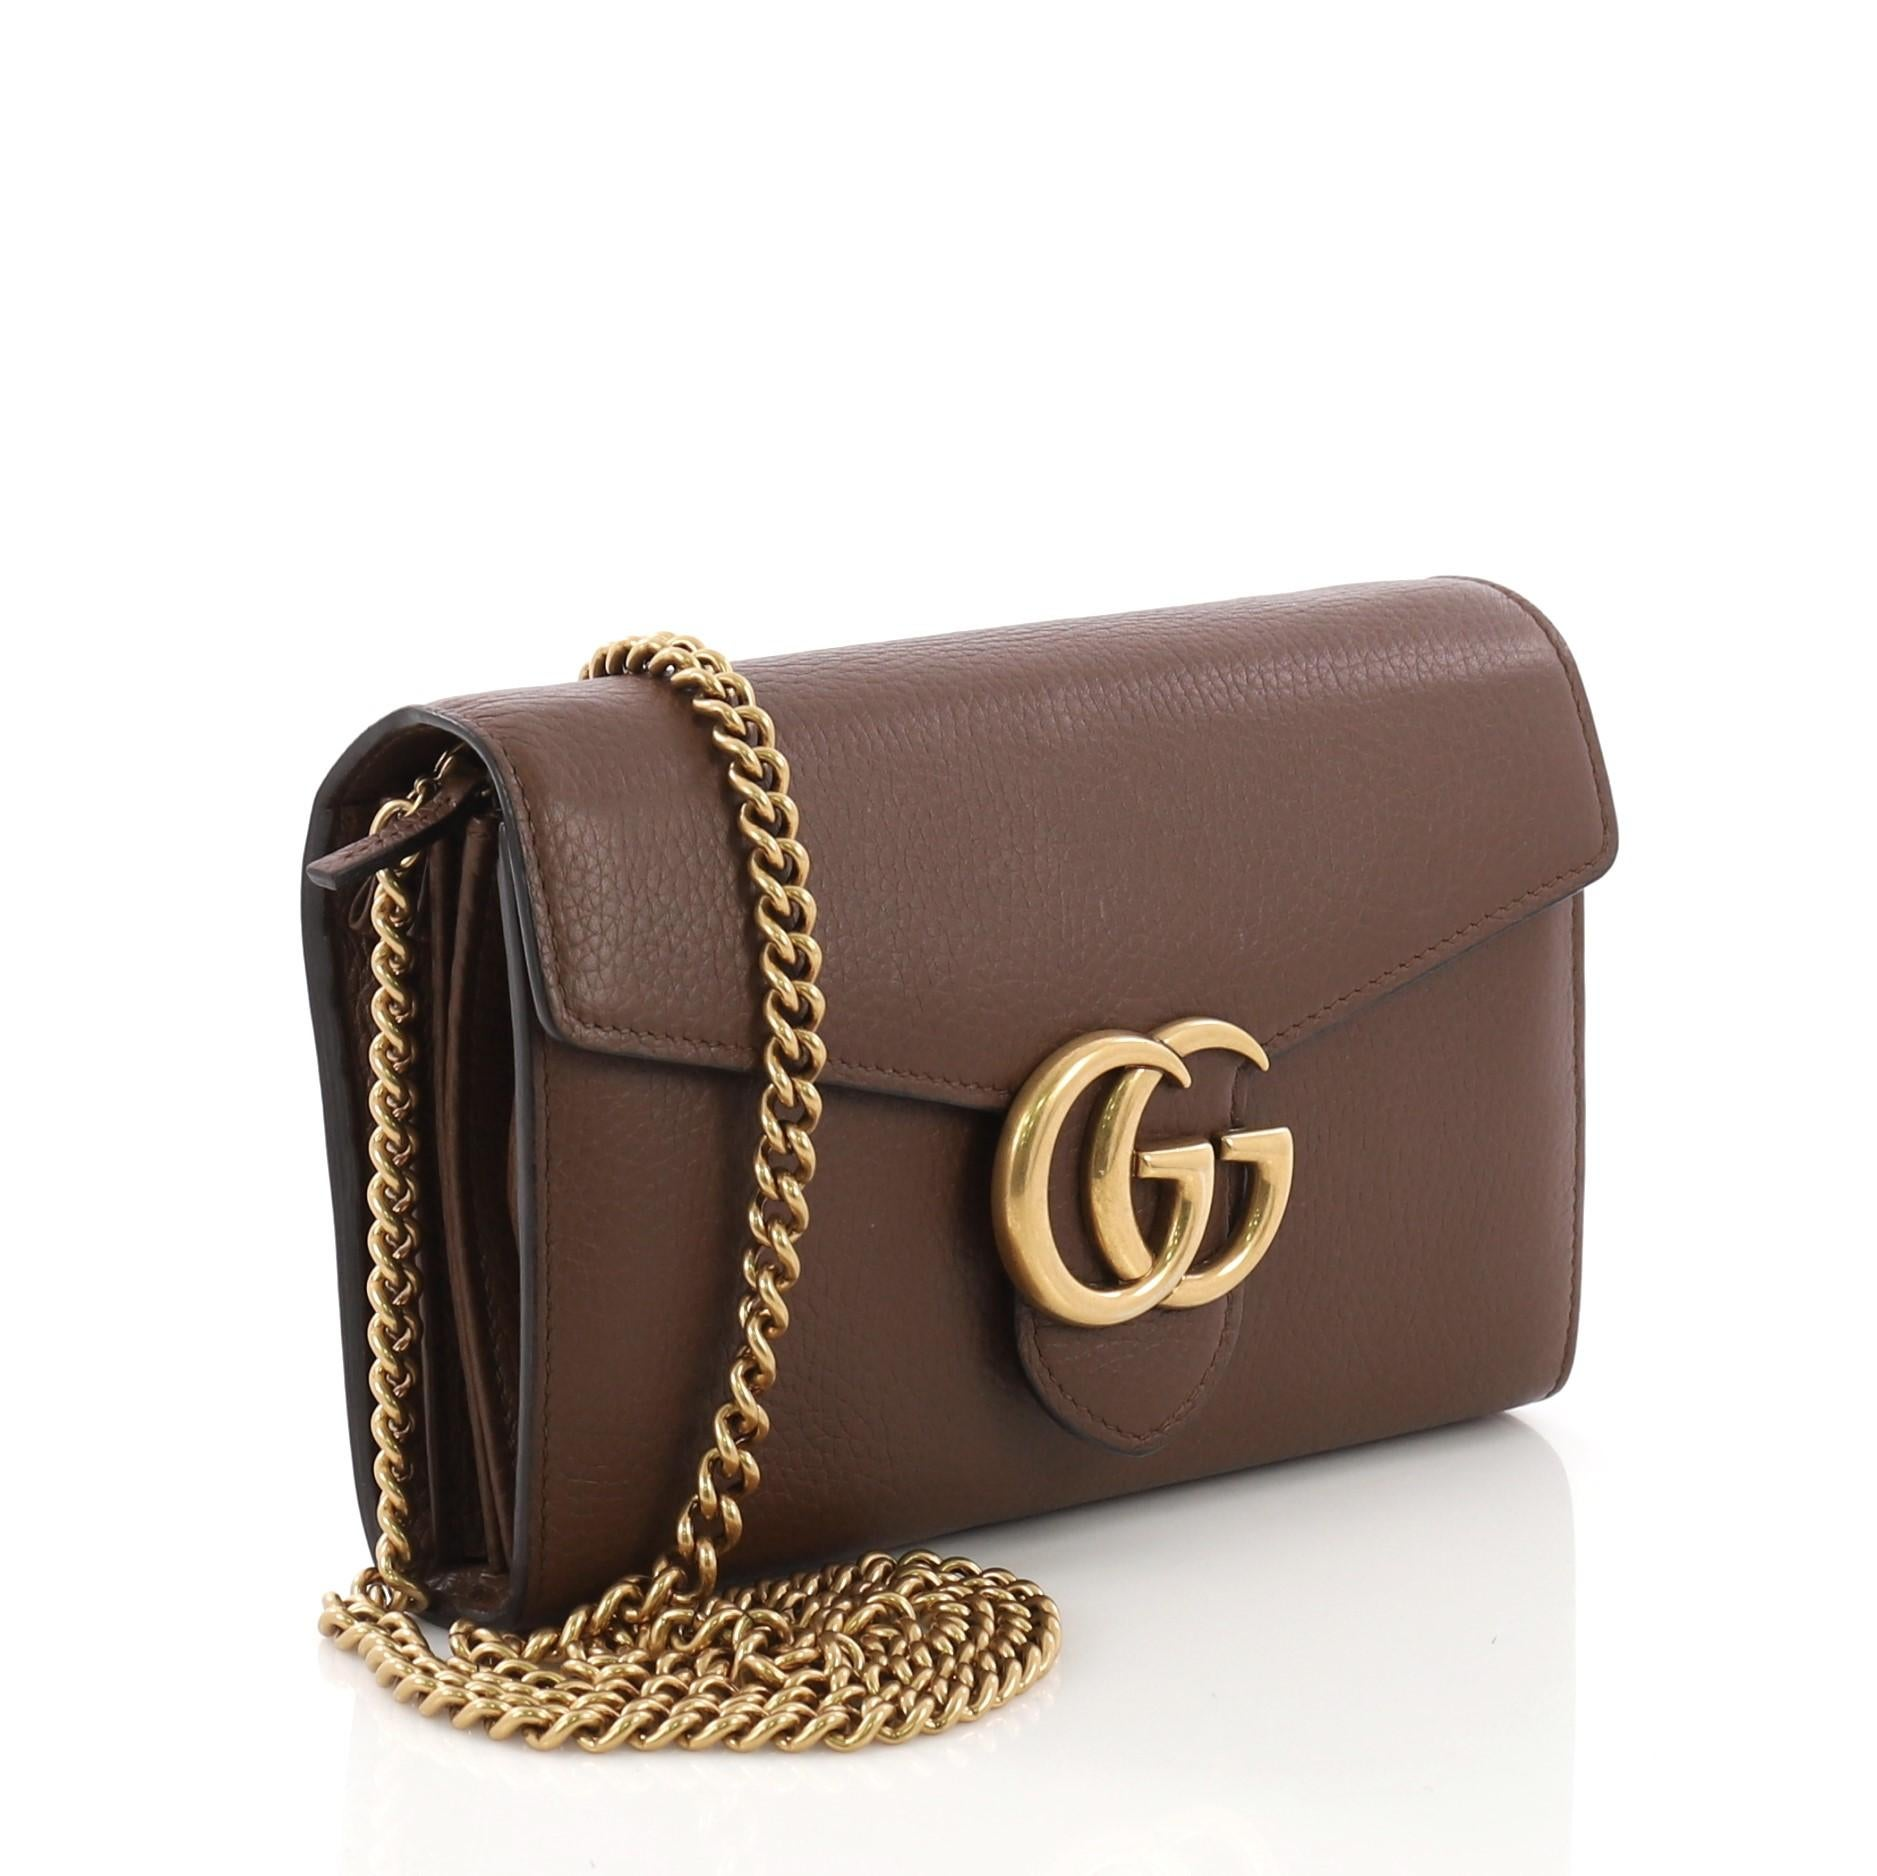 e9a2c0abb1dc Gucci GG Marmont Chain Wallet Leather Mini For Sale at 1stdibs